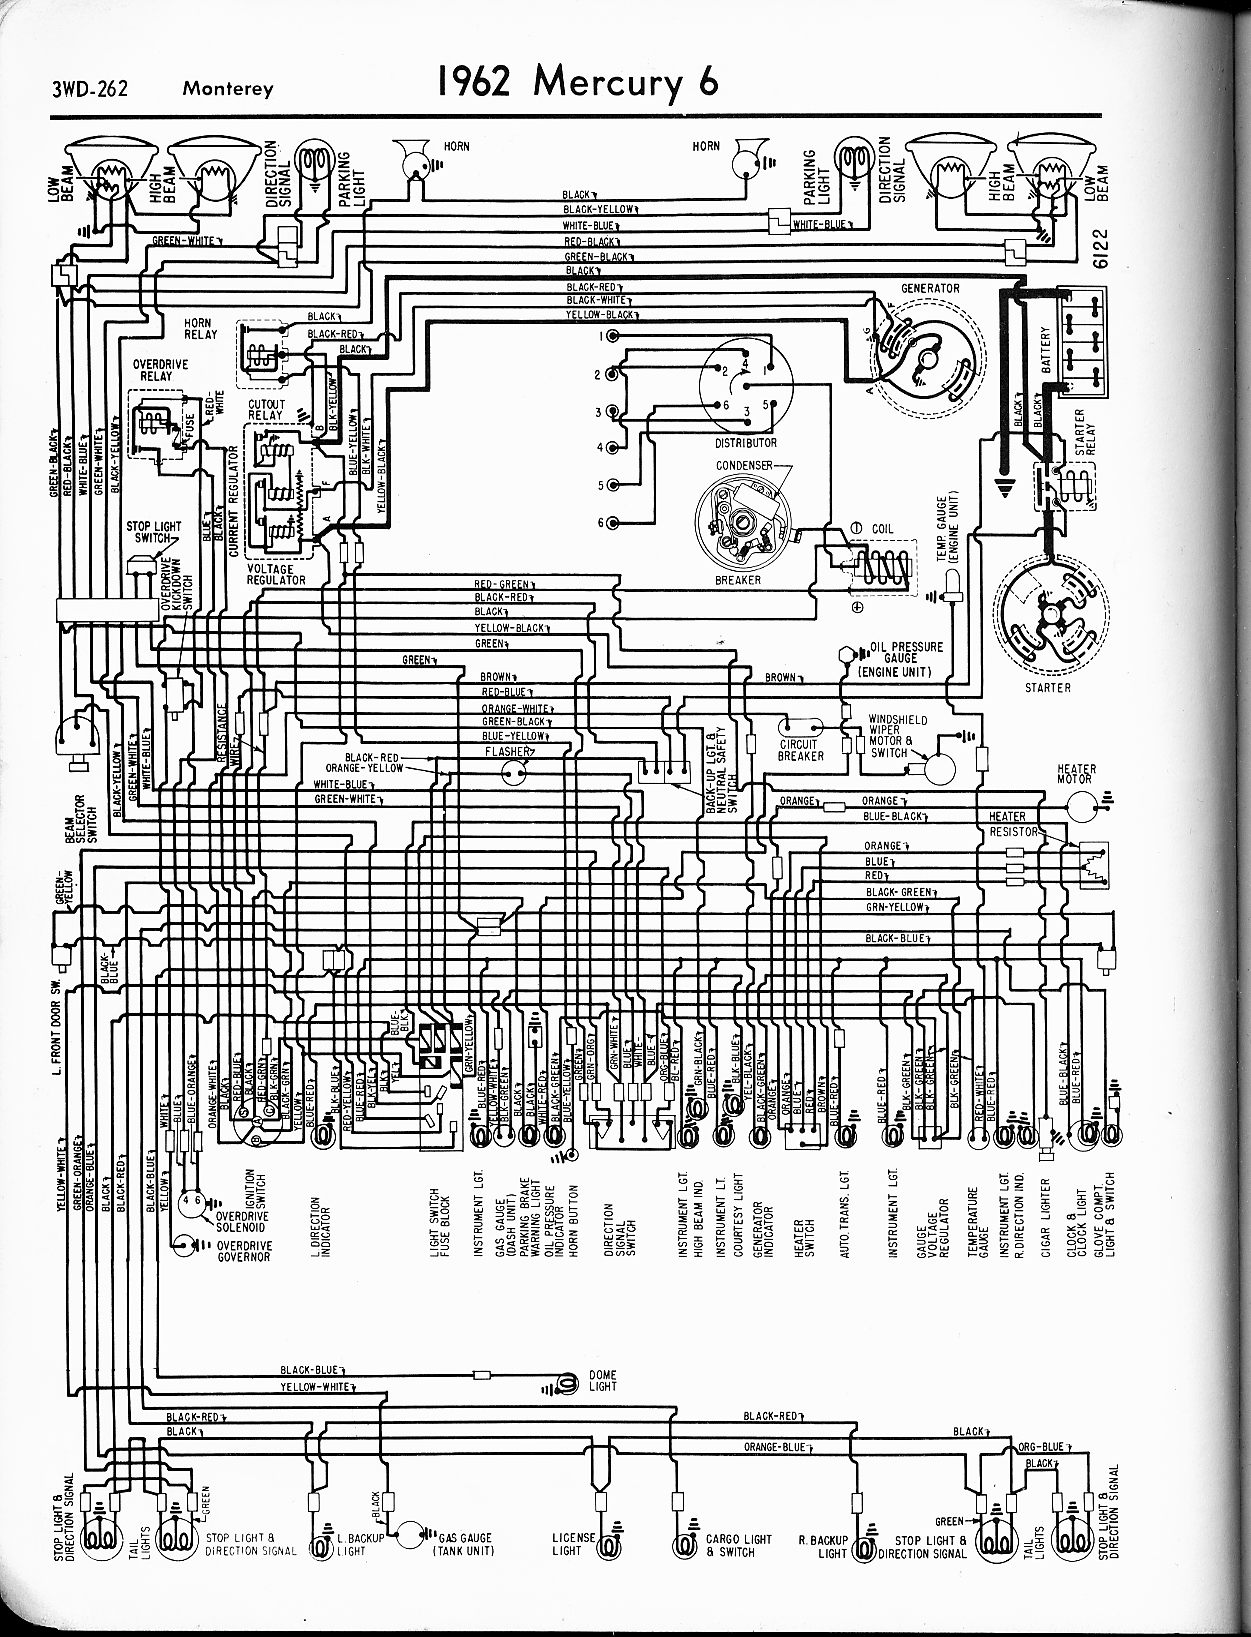 83 Mustang Wiring Diagram Wire Center 302 Mercury Diagrams The Old Car Manual Project Rh Oldcarmanualproject Com 1966 Gt